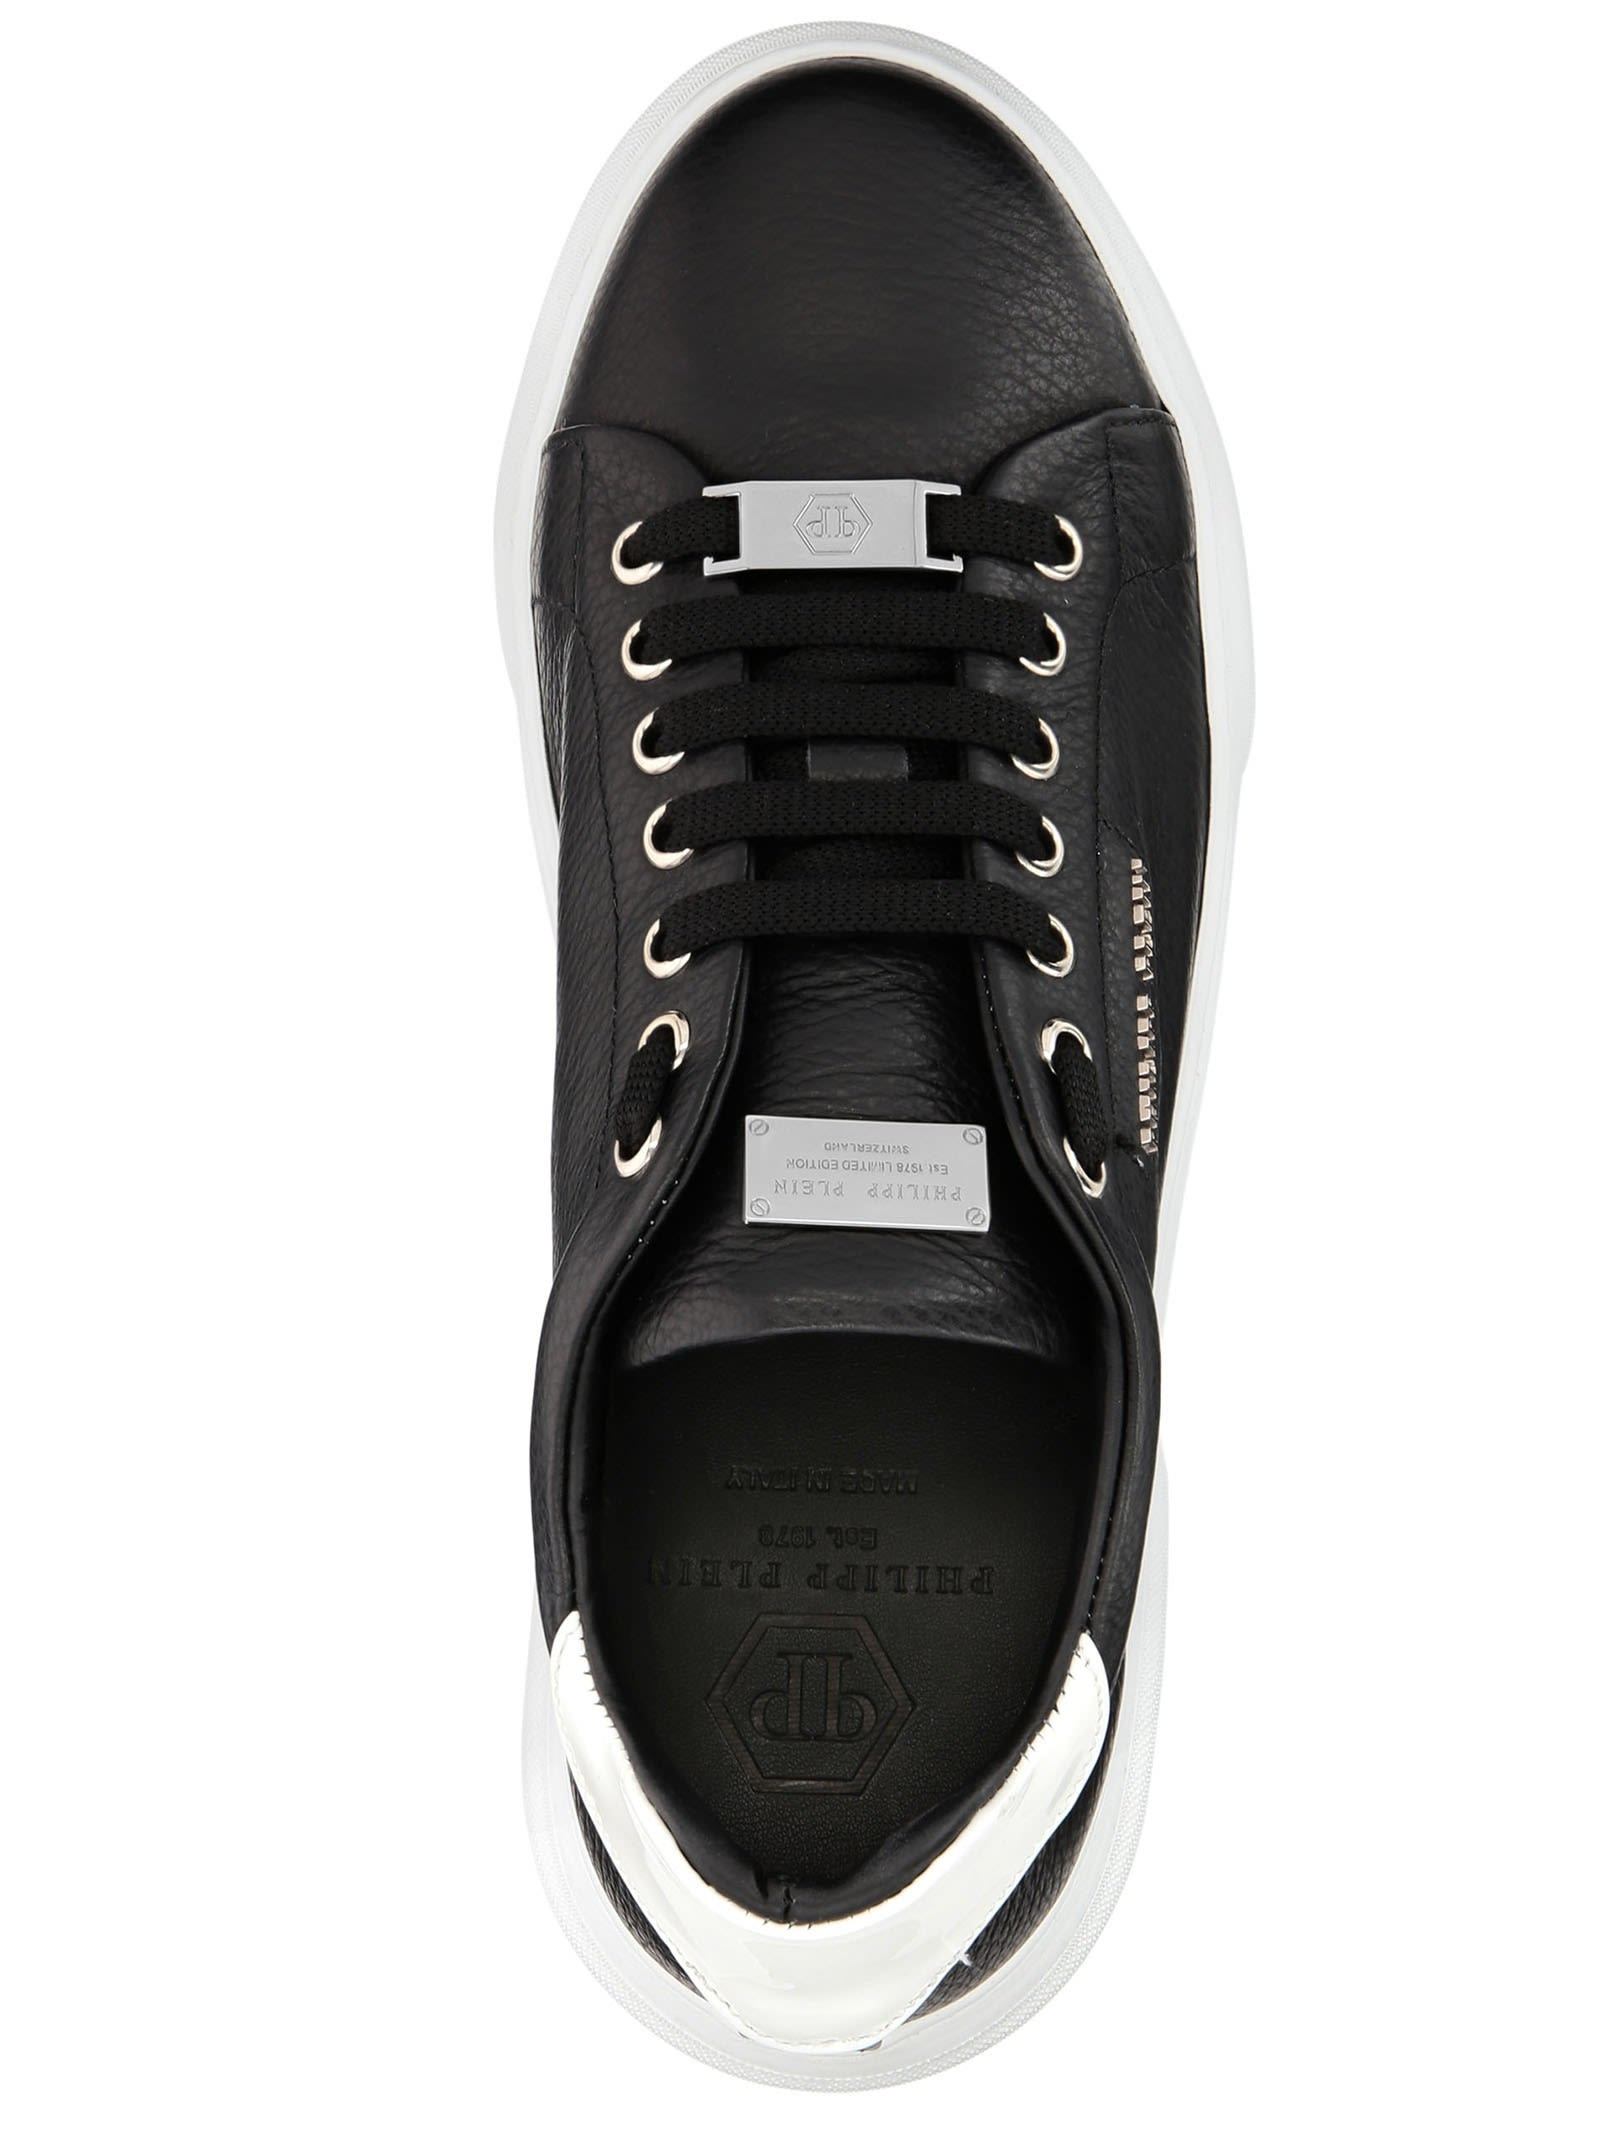 5969b4f38a1 Philipp Plein Philipp Plein Black Leather Sneakers - BLACK ...